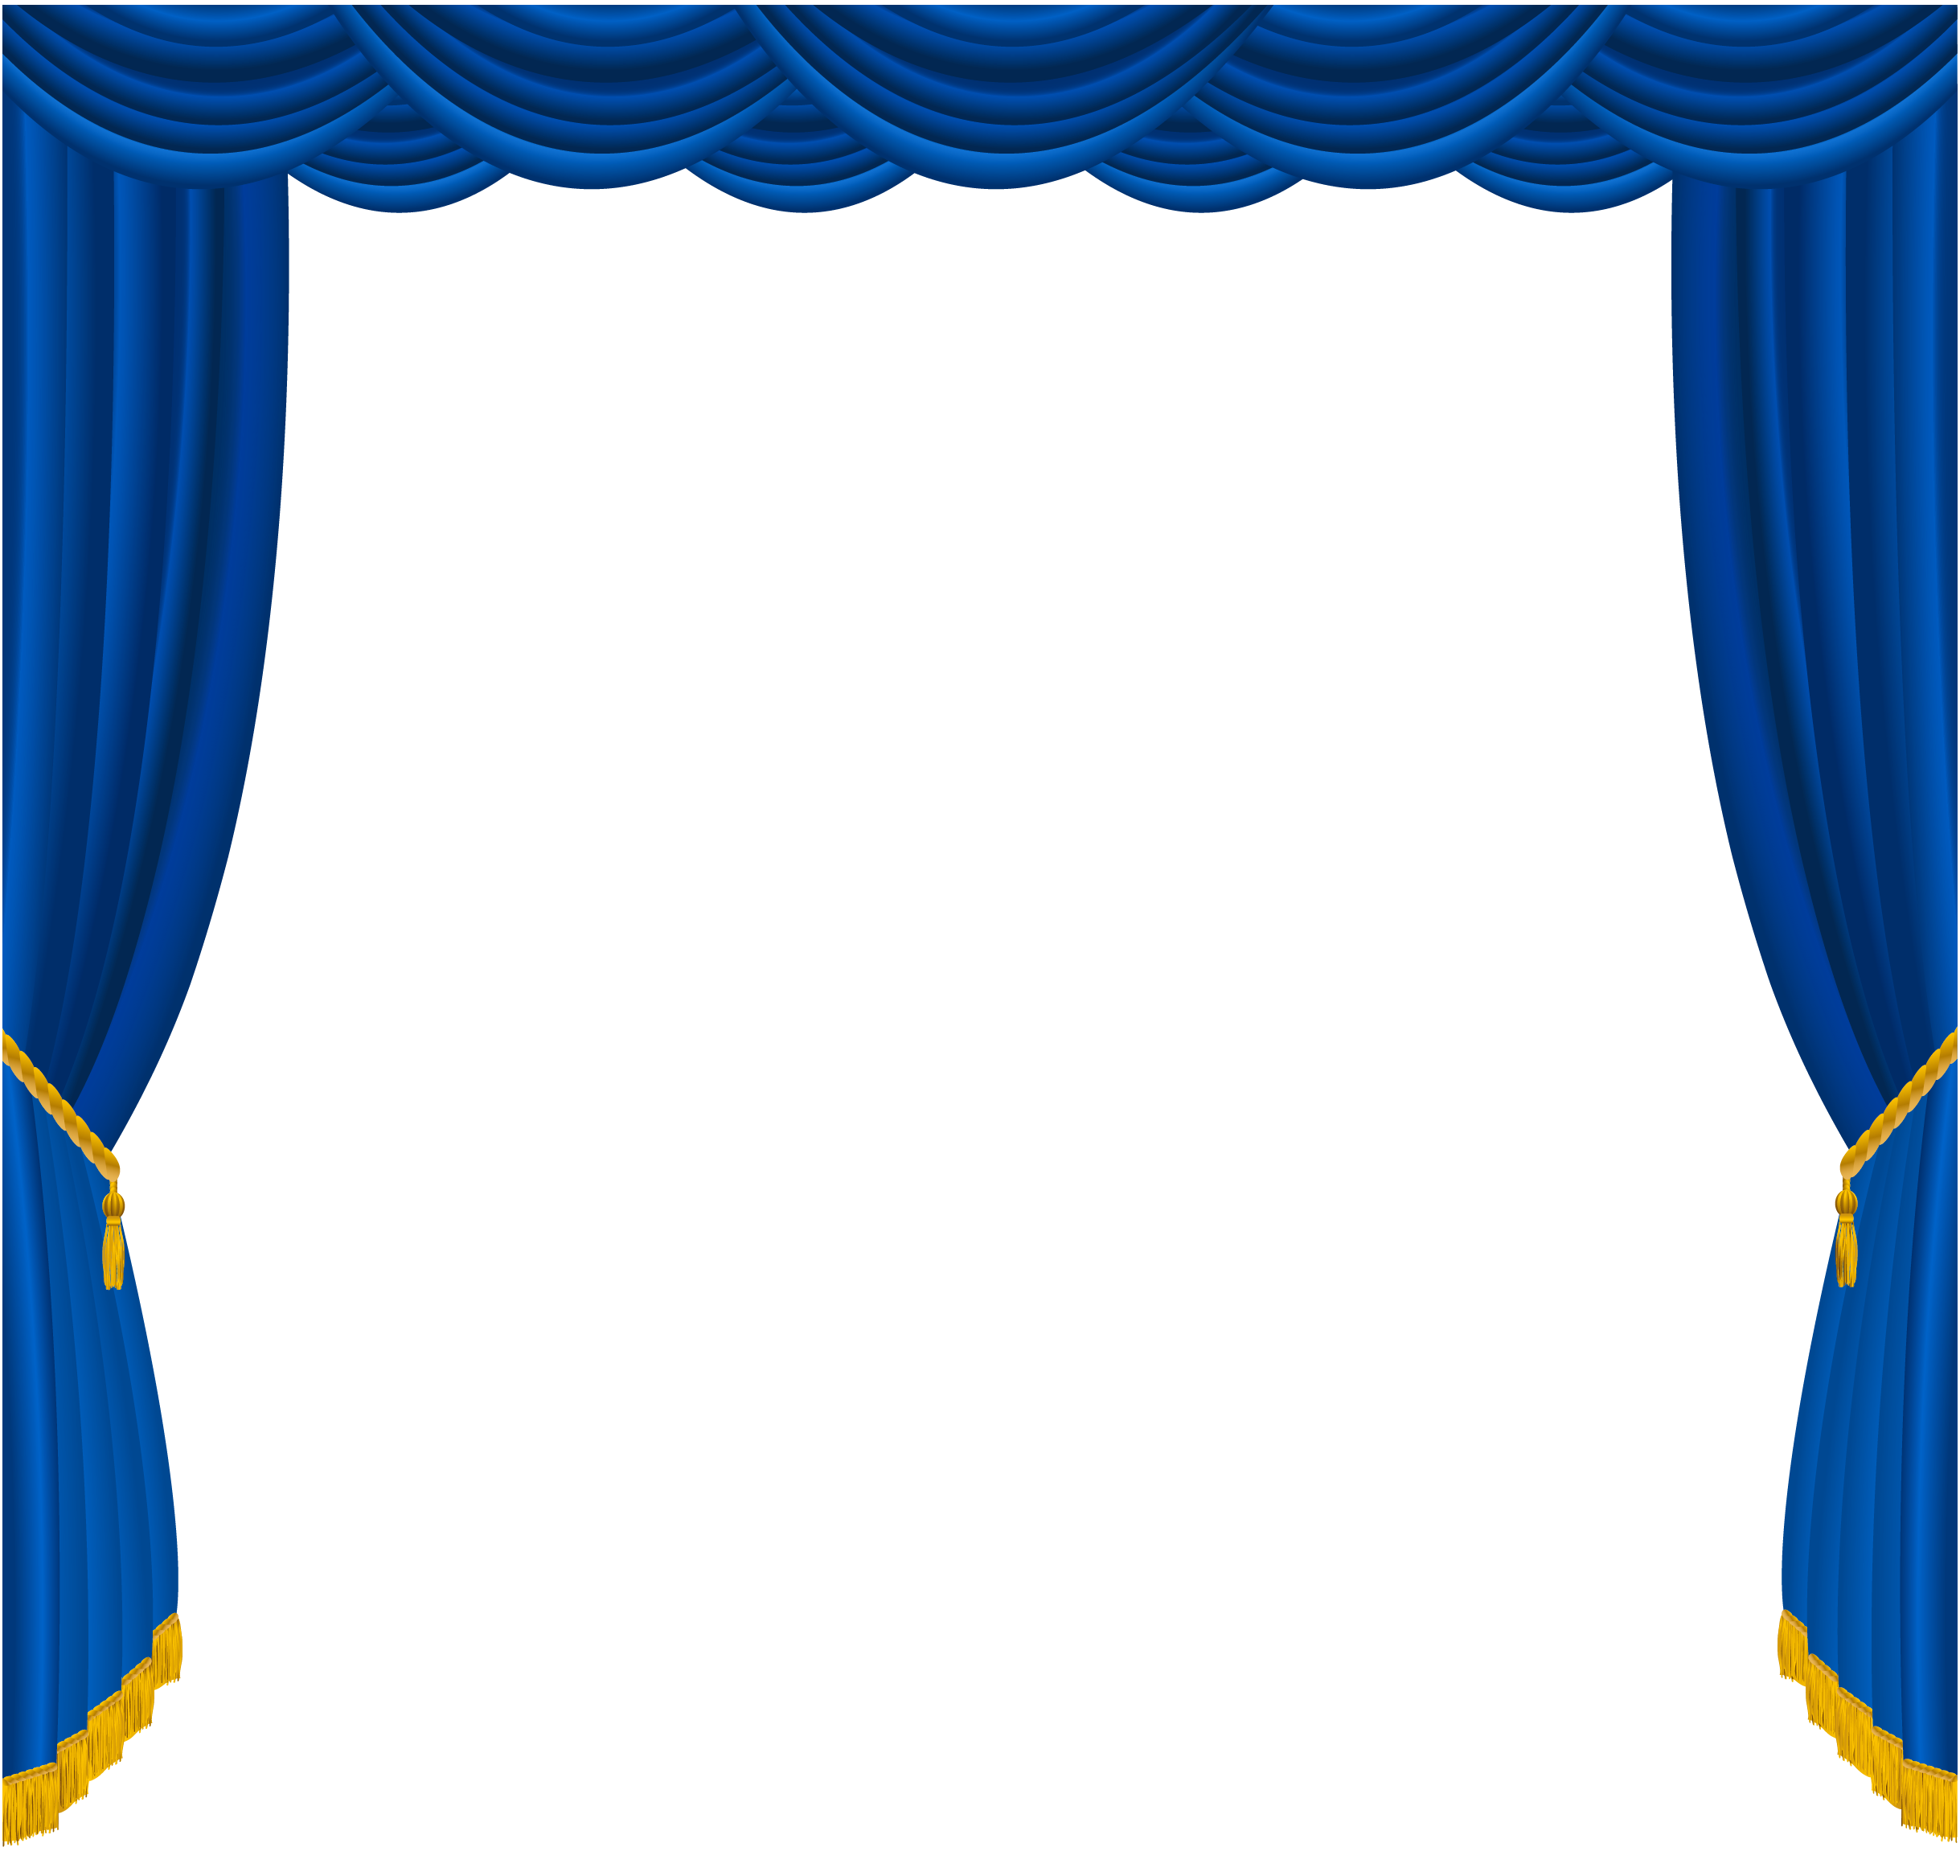 Design clipart blue. Transparent curtains decor png